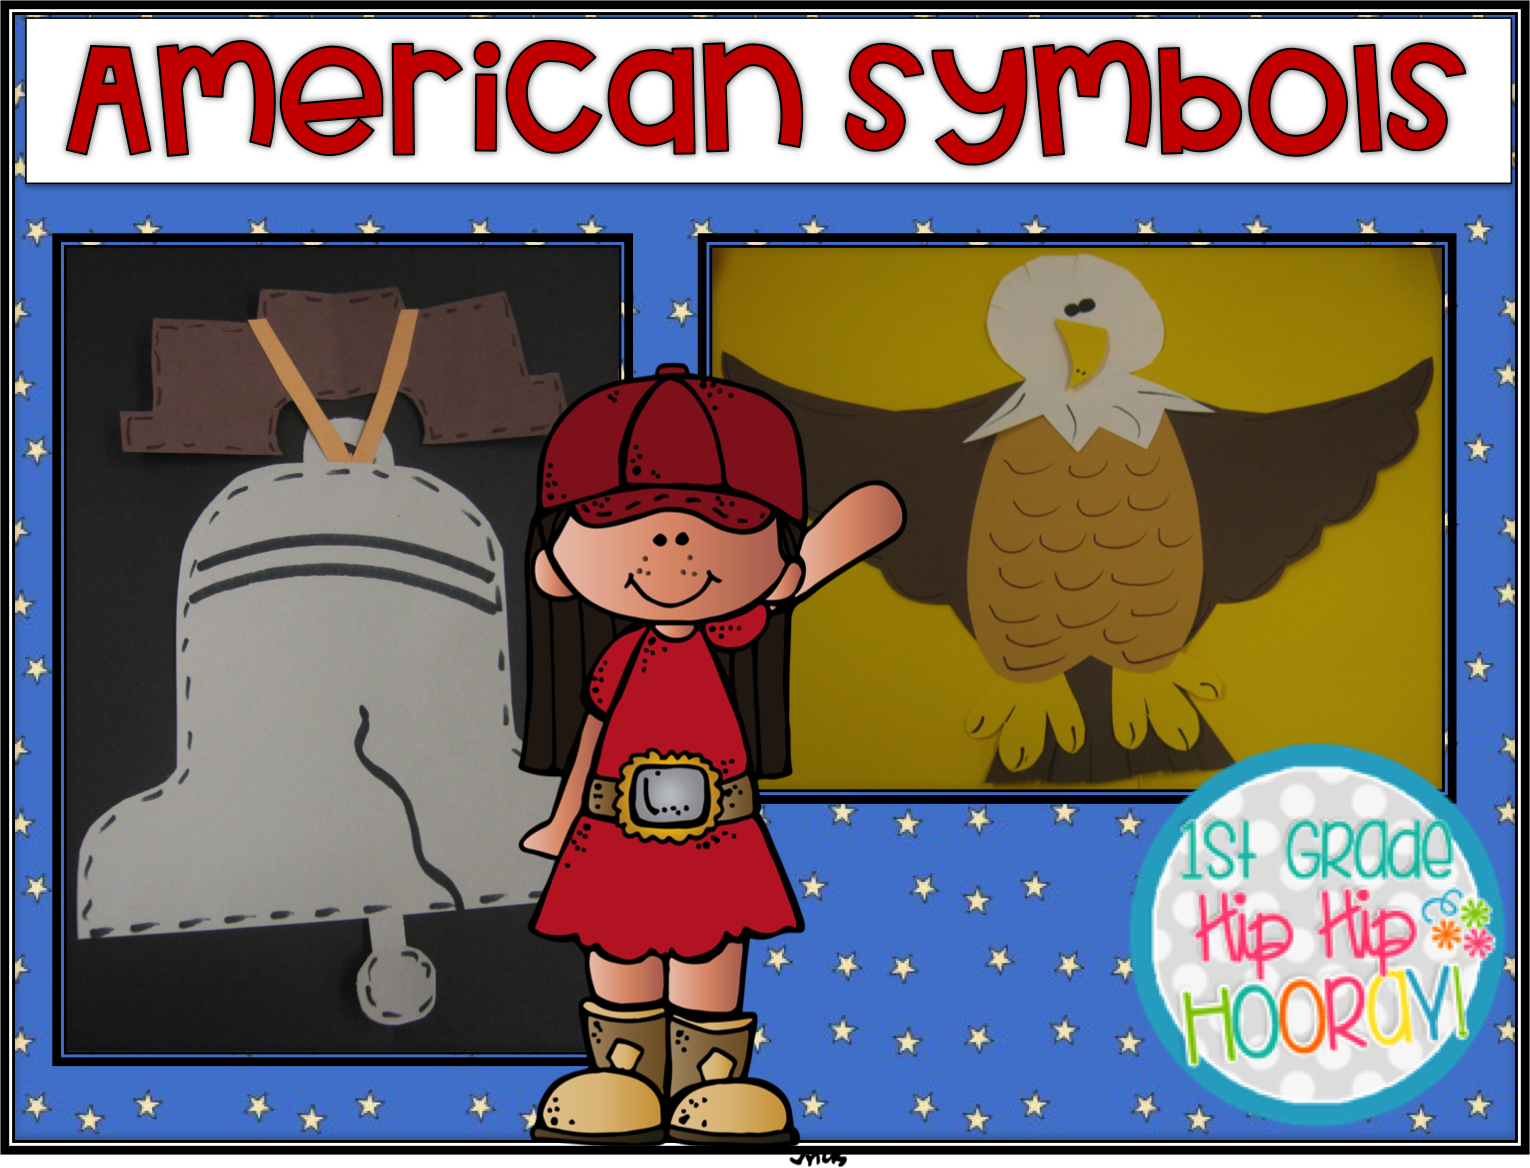 Worksheets American Symbols 1st Grade   Printable Worksheets and Activities  for Teachers [ 1168 x 1530 Pixel ]